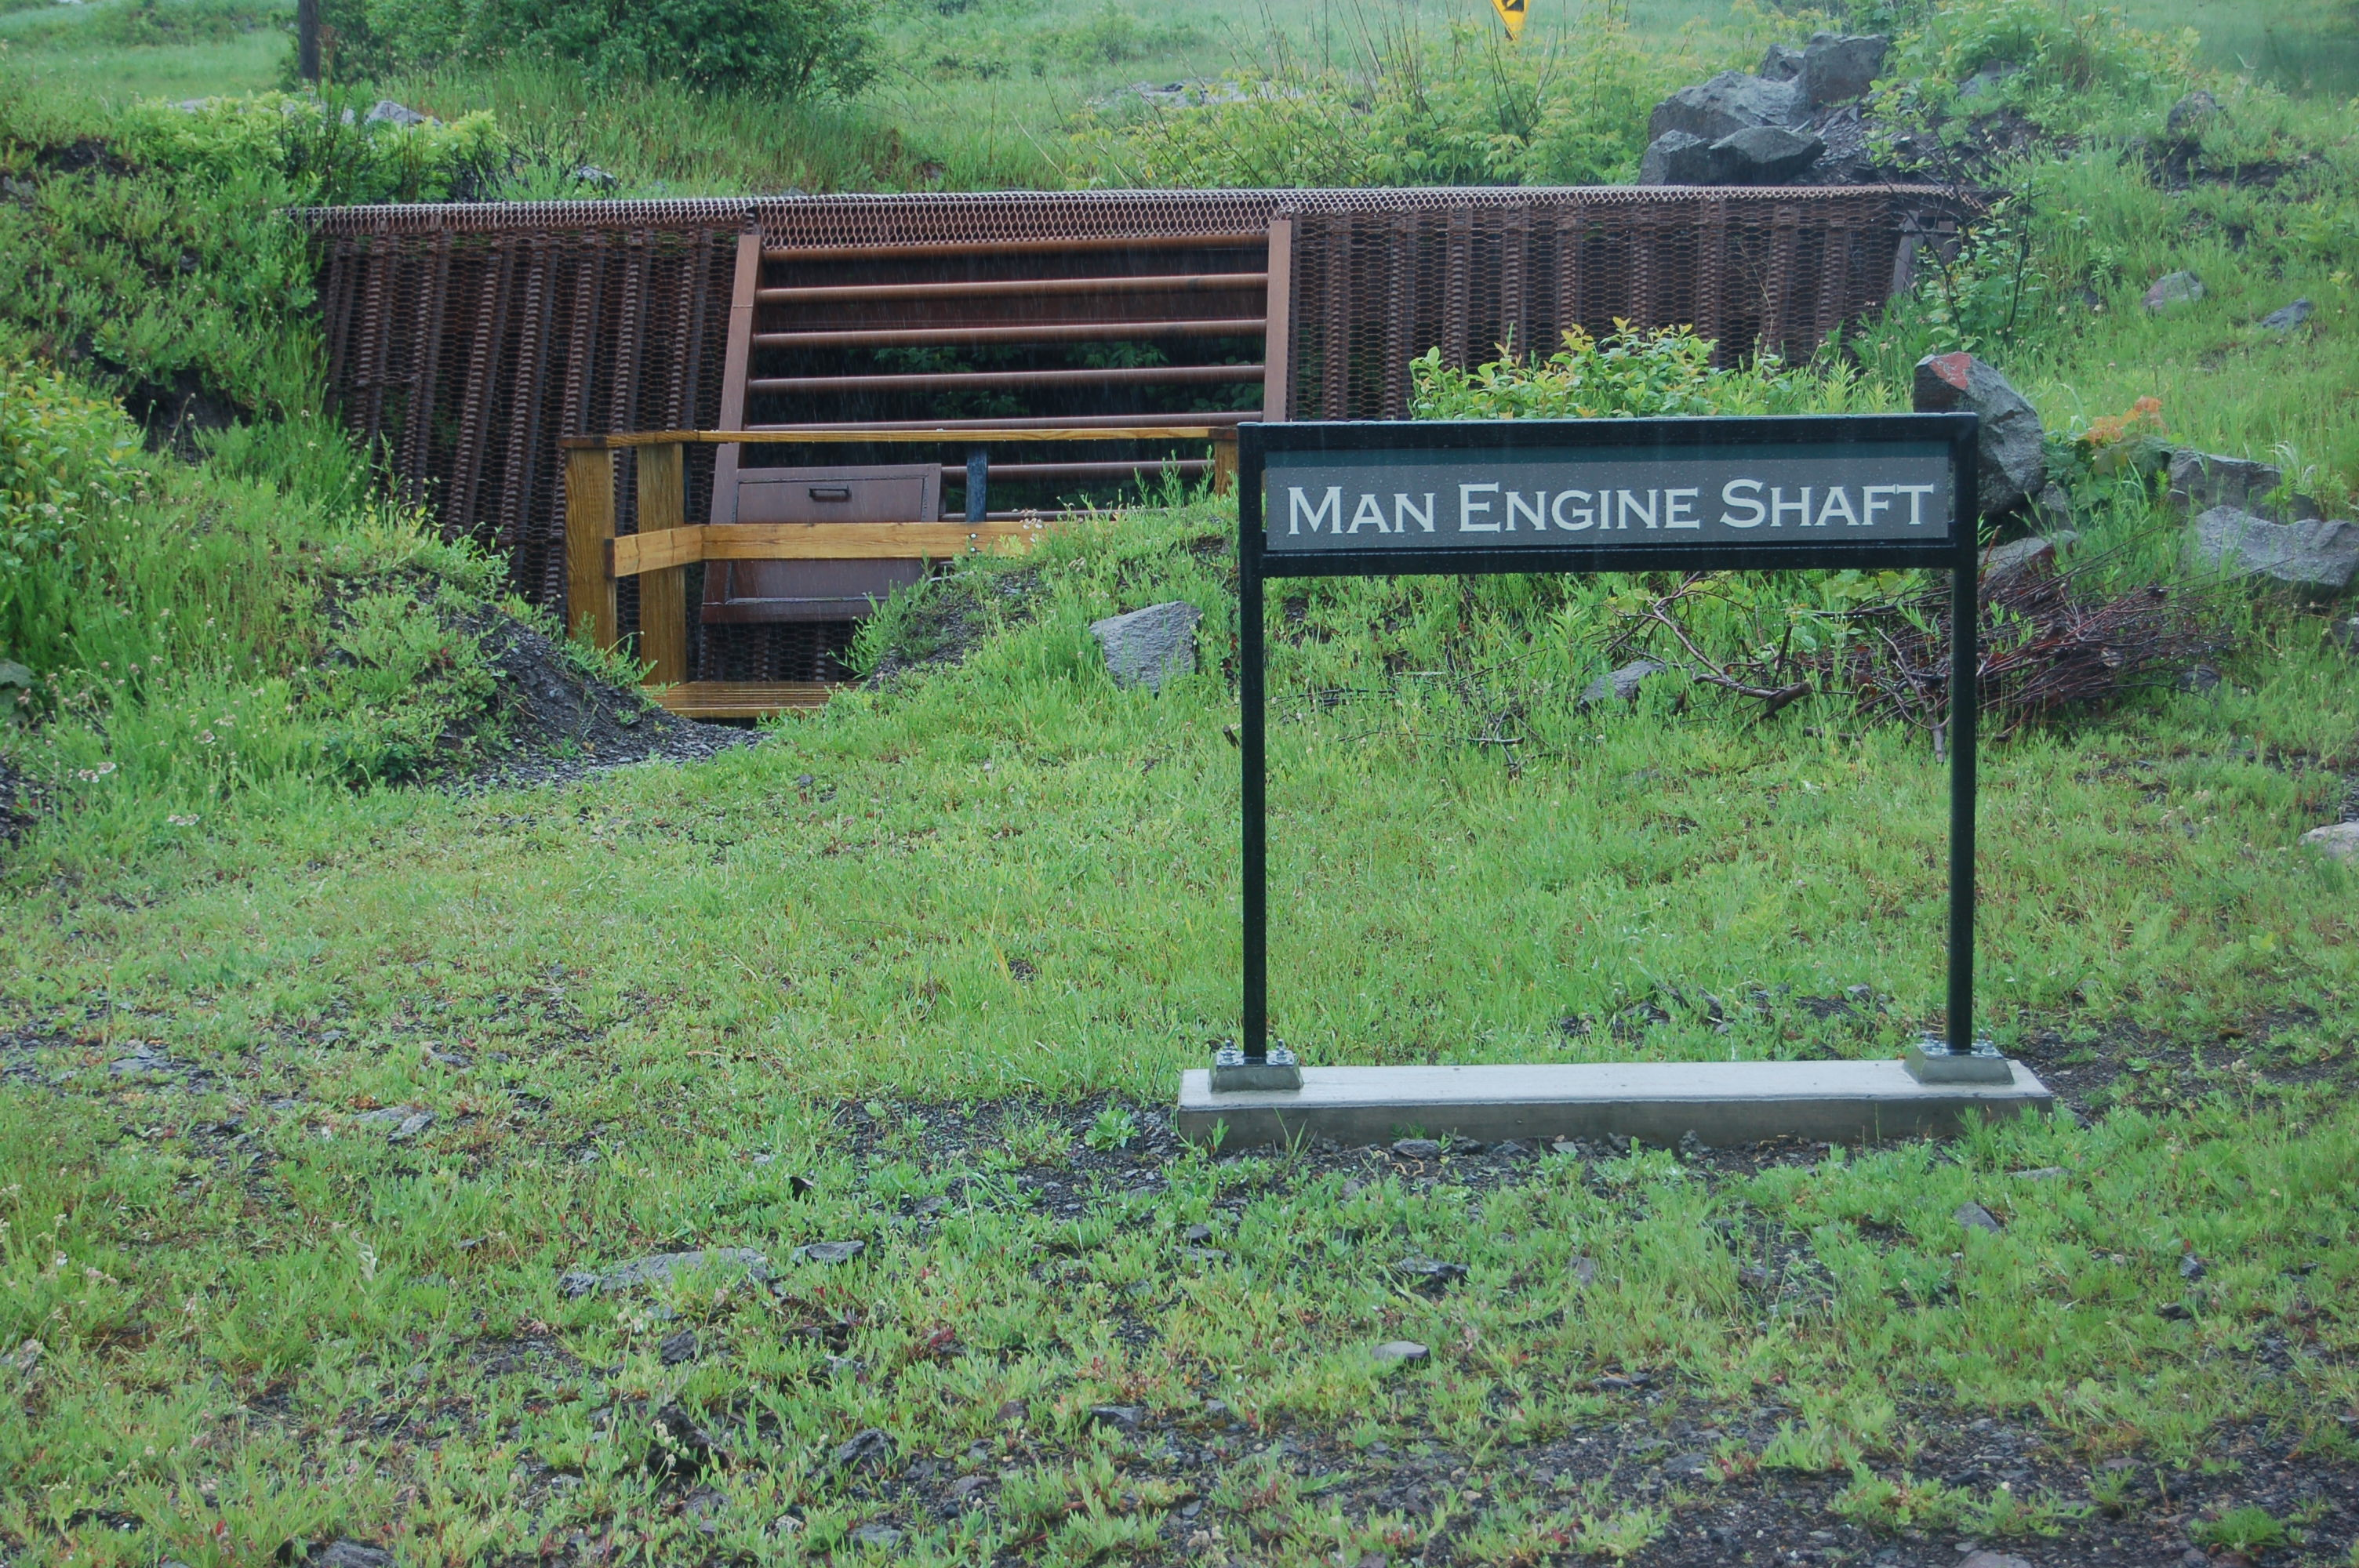 Quincy Mine Man Engine Shaft